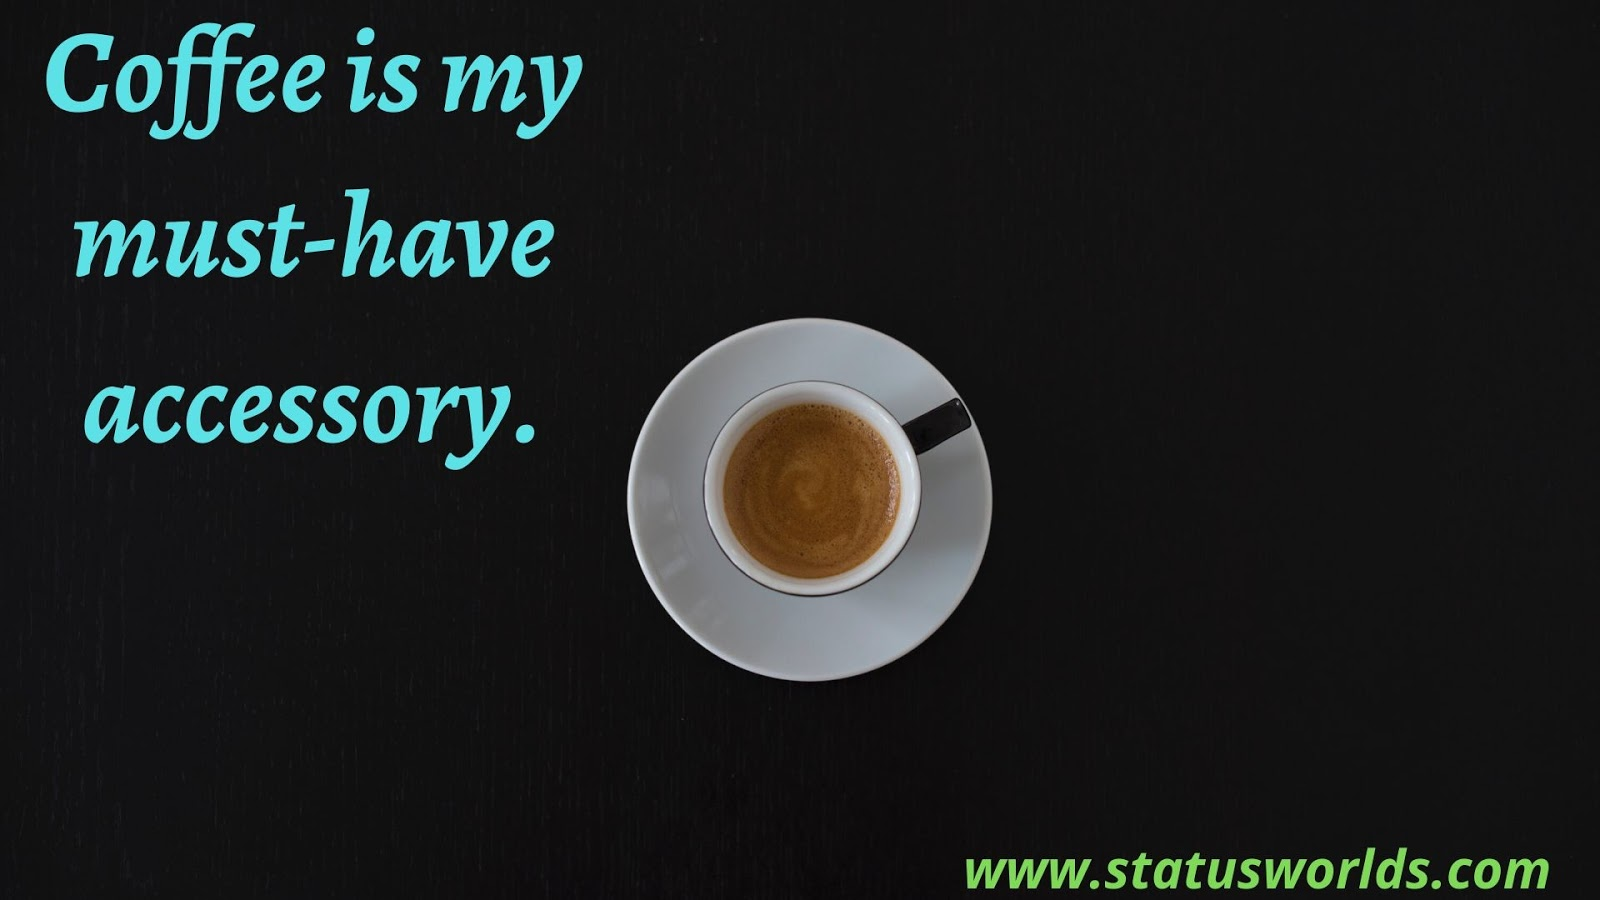 Hot And Cold Coffee Status Quotes Captions 2021 For A Coffee Lover Status World